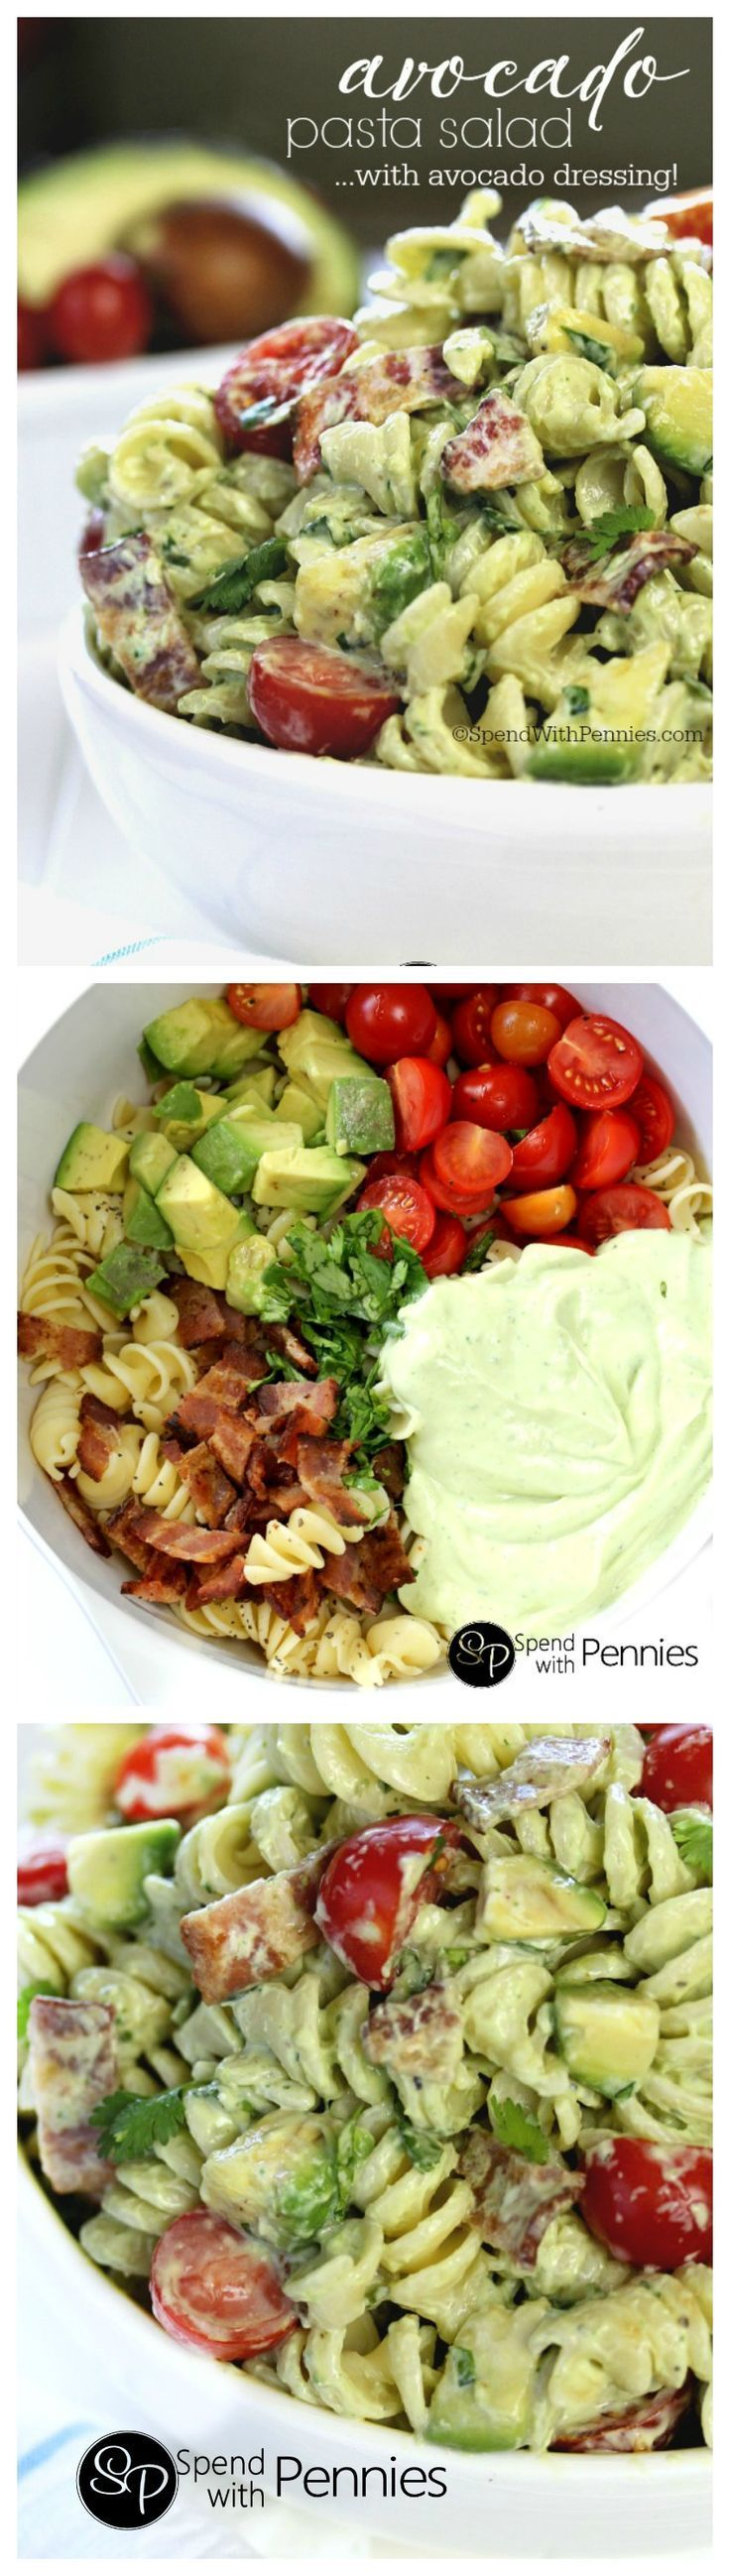 Cold pasta salads are the perfect & satisfying quick dinner or lunch! This delicious pasta salad recipe is loaded with avocados, crispy bacon & juicy cherry tomatoes tossed in a homemade avocado dressing!